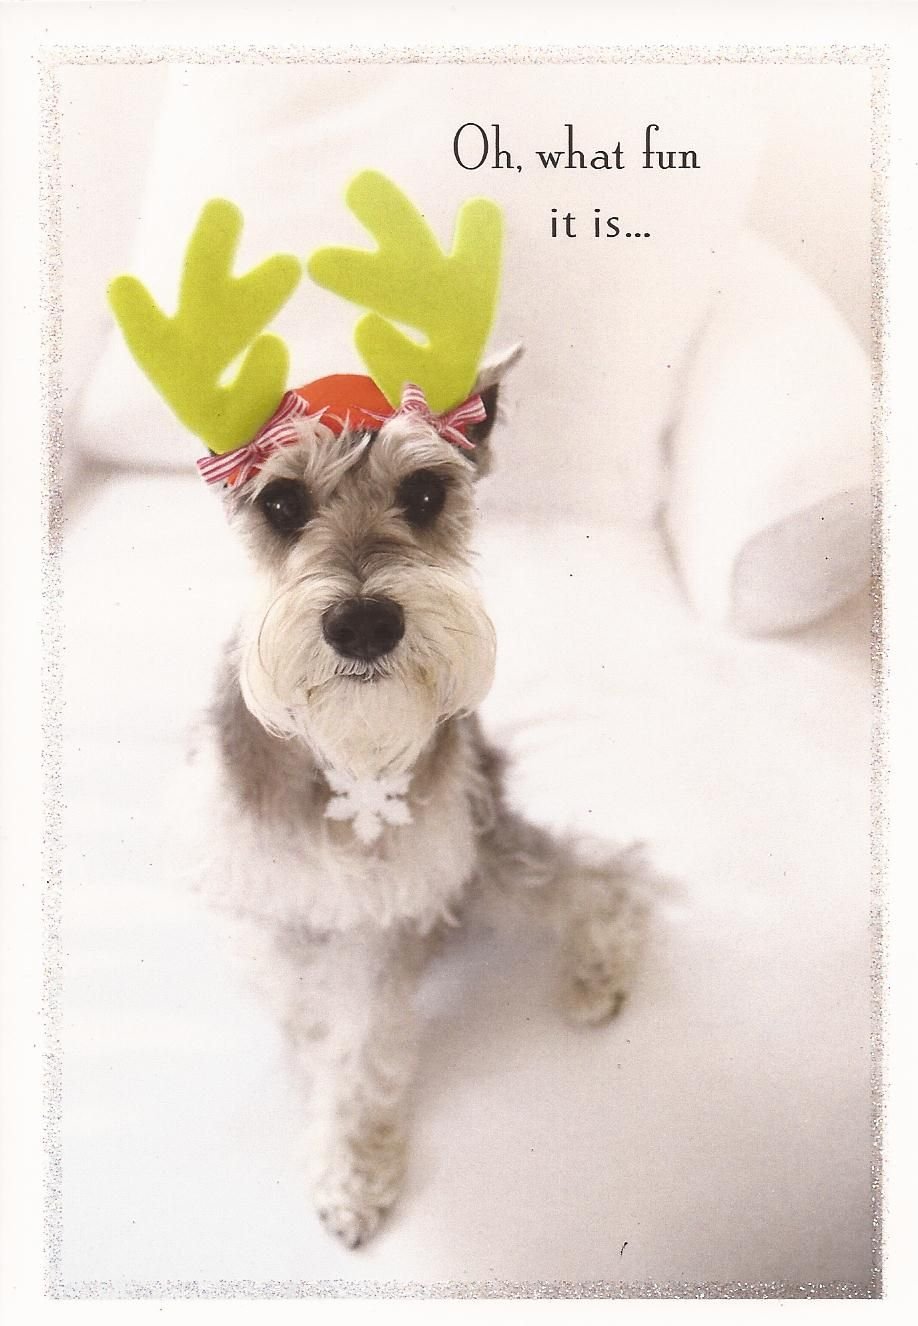 Merry Schnauzer Dressed Up For The Upcoming Holidays